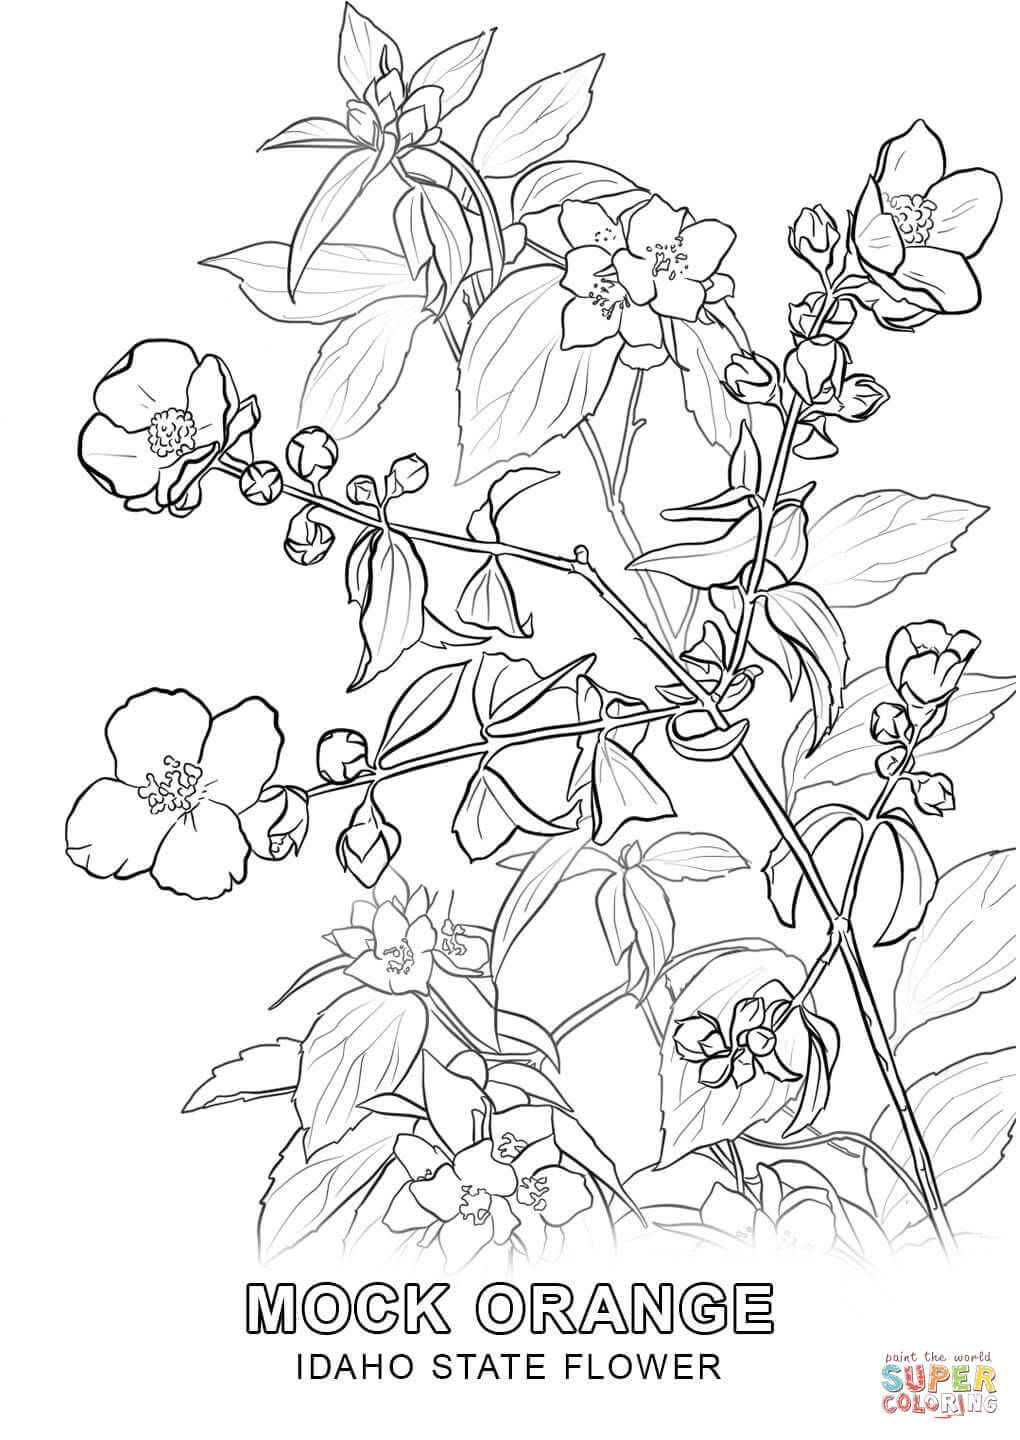 Idaho State Flower Coloring Page Jpg 1020 1440 Cherry Blossom